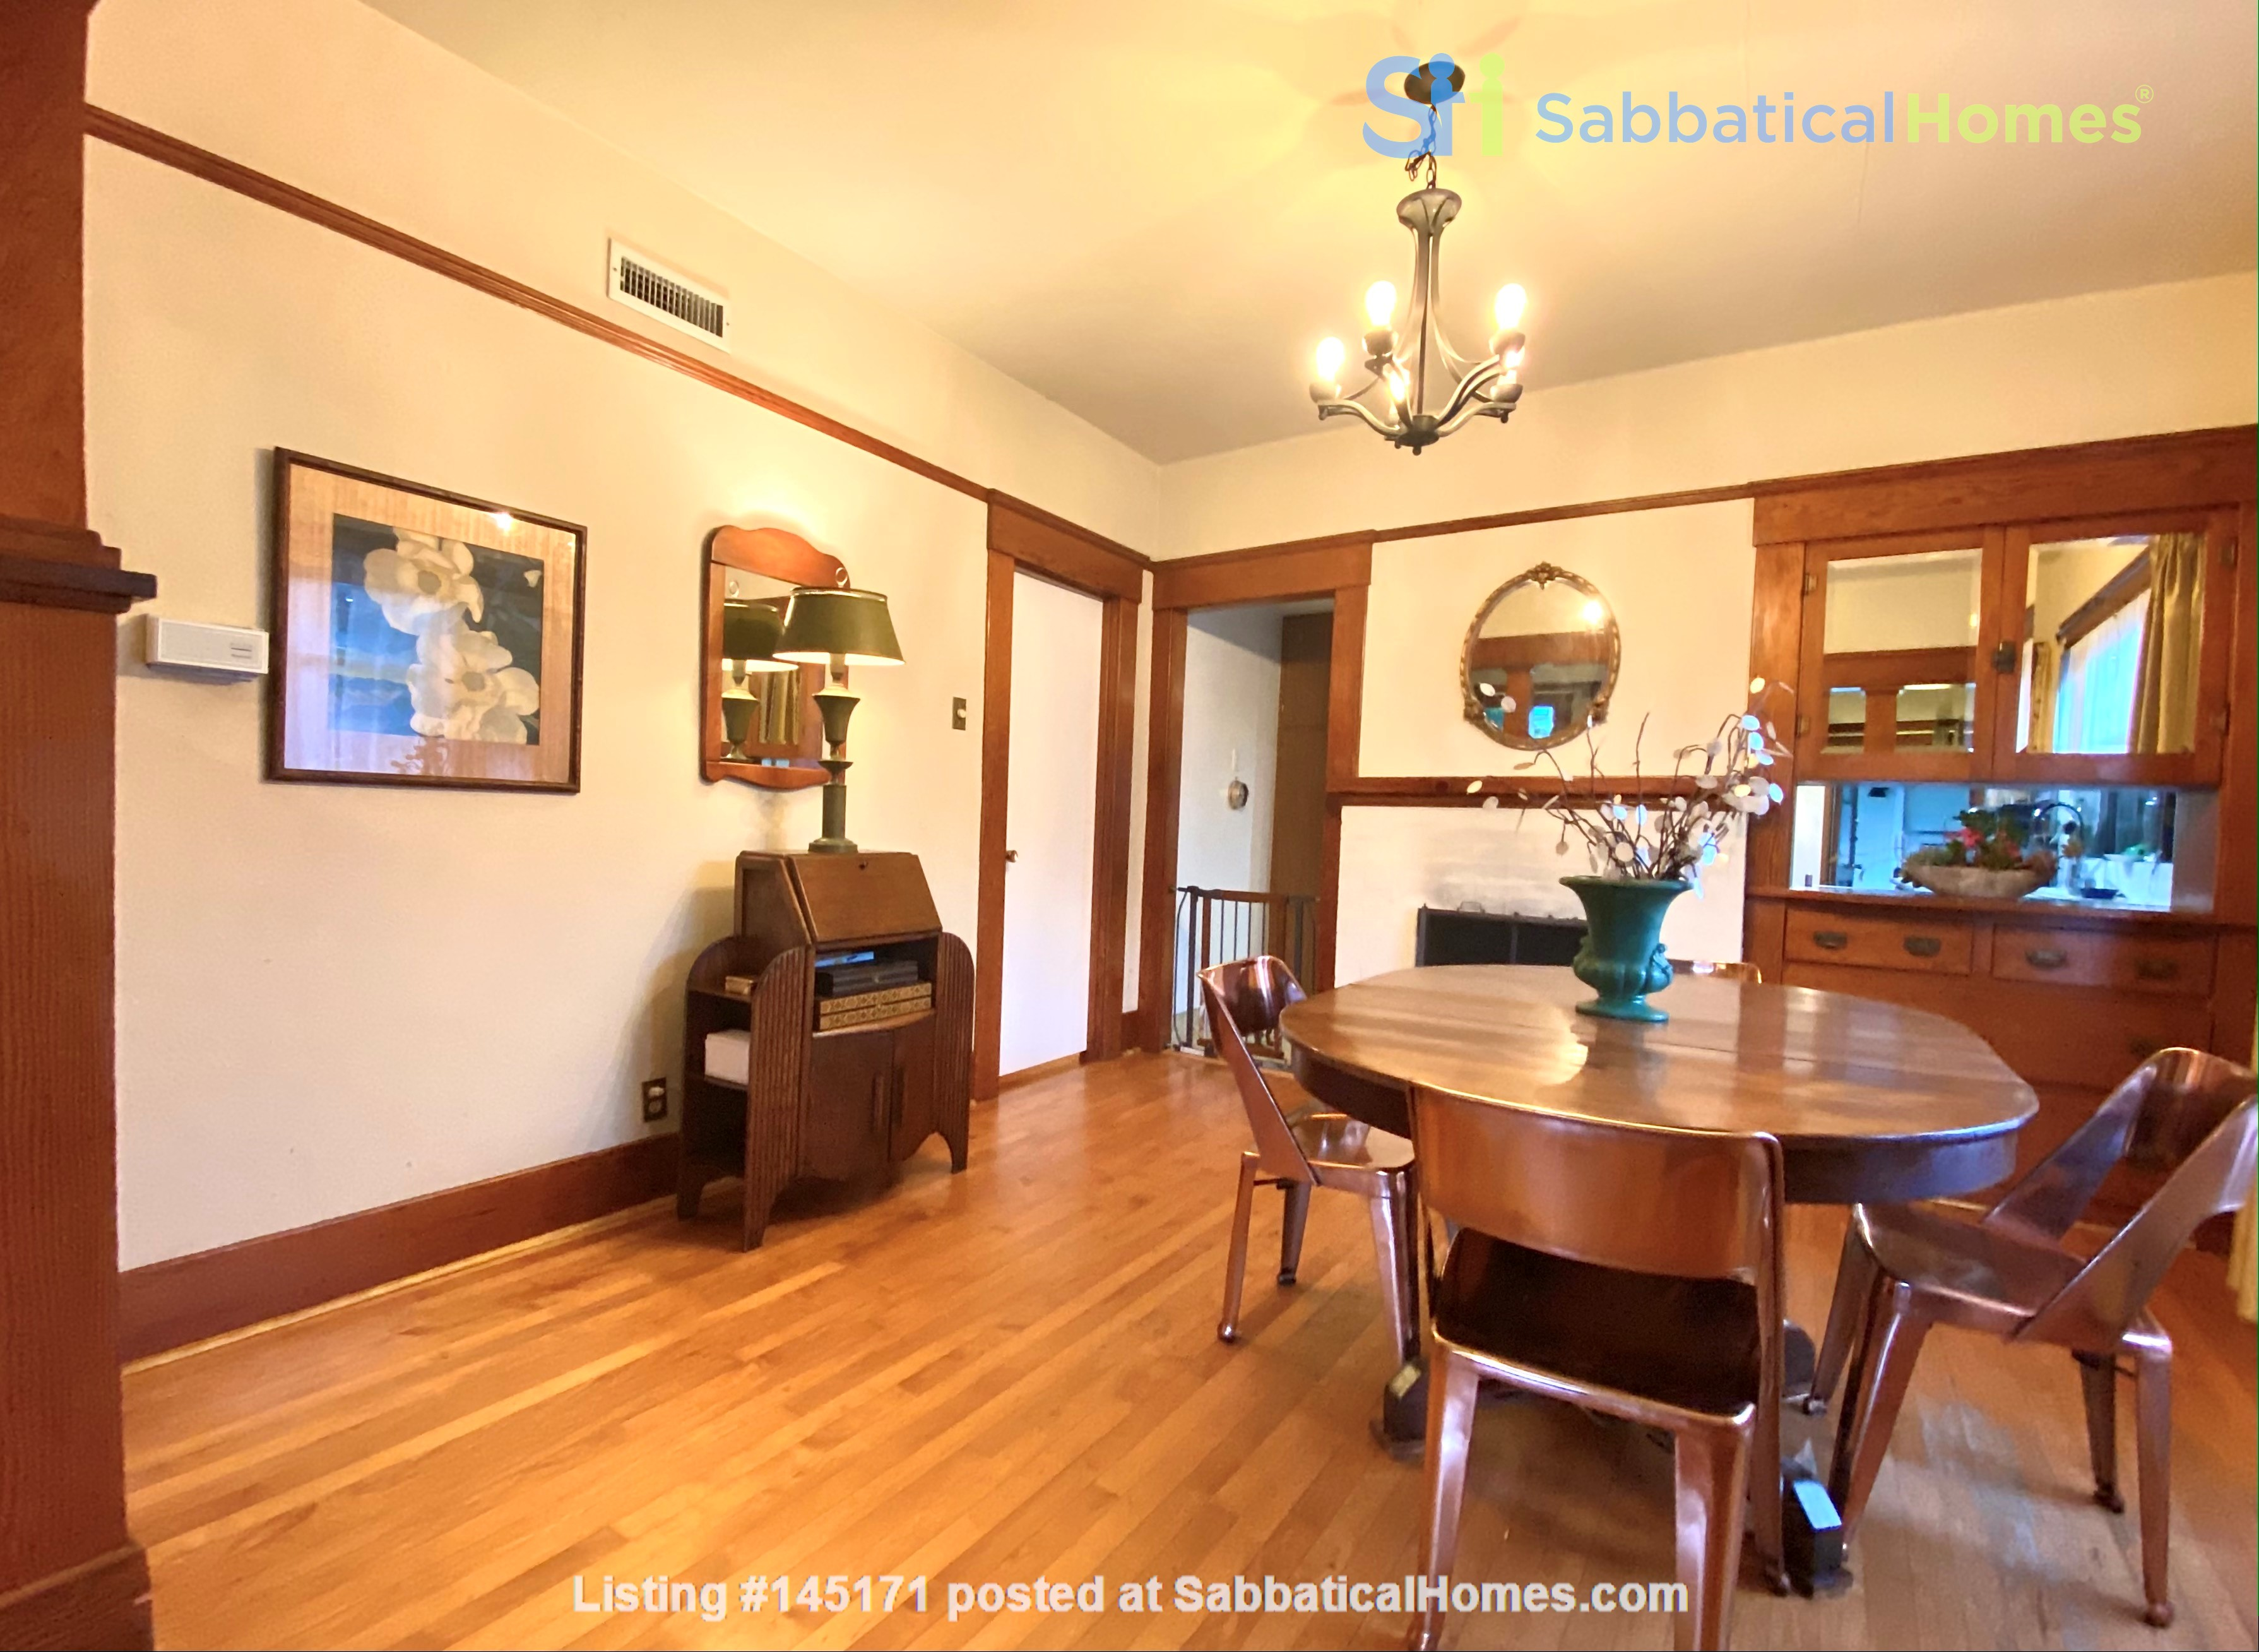 Lovely Craftsman home in historic neighborhood near beaches and downtown! Home Rental in San Diego 4